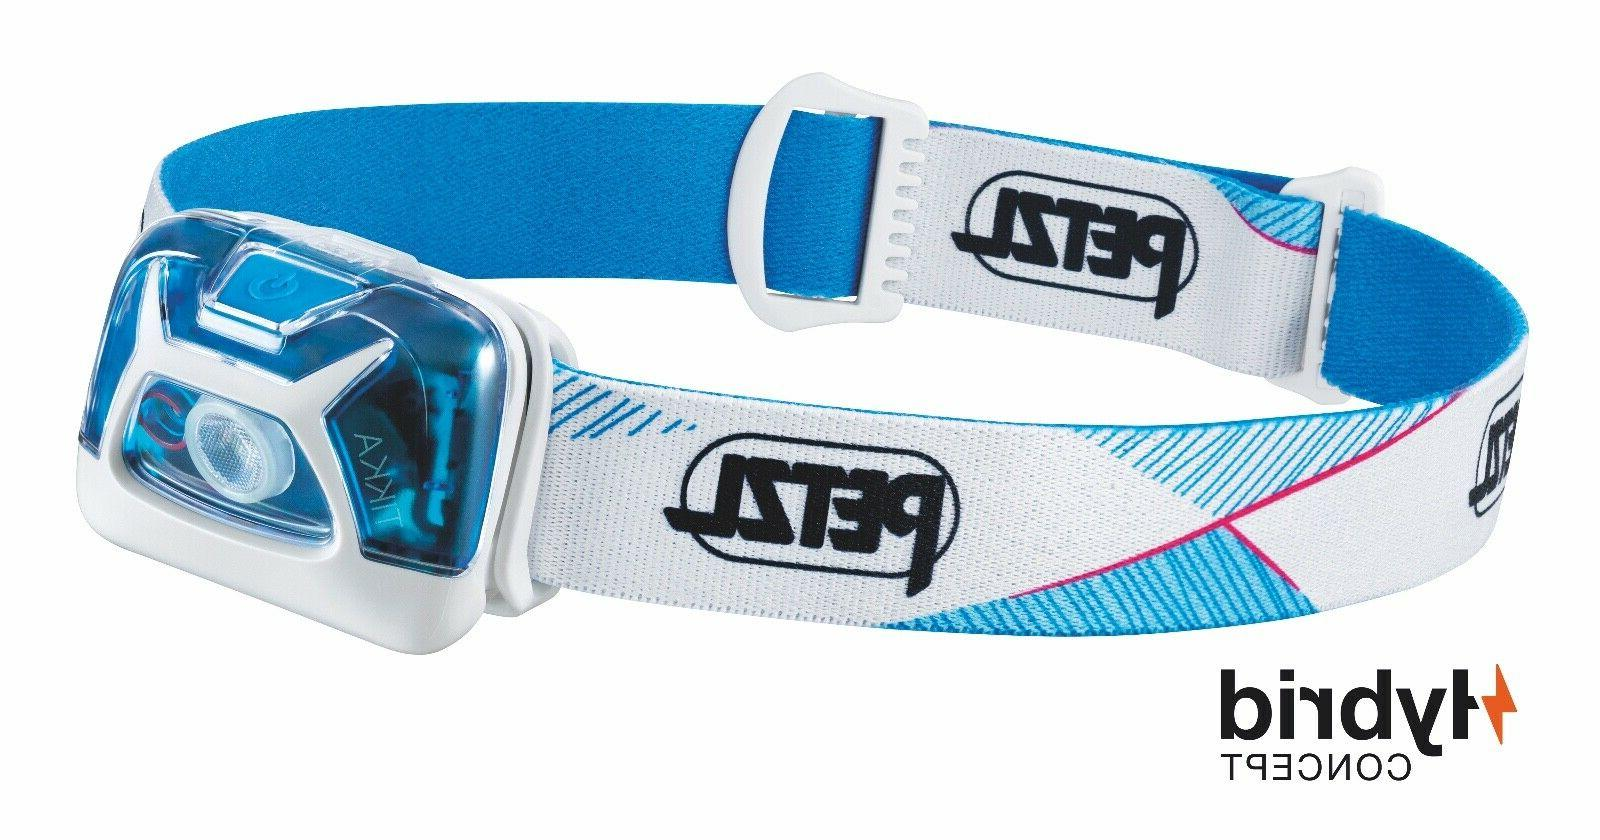 PETZL TIKKA 300 LUMENS HEADLAMP - 2019/2020 - MODEL E93